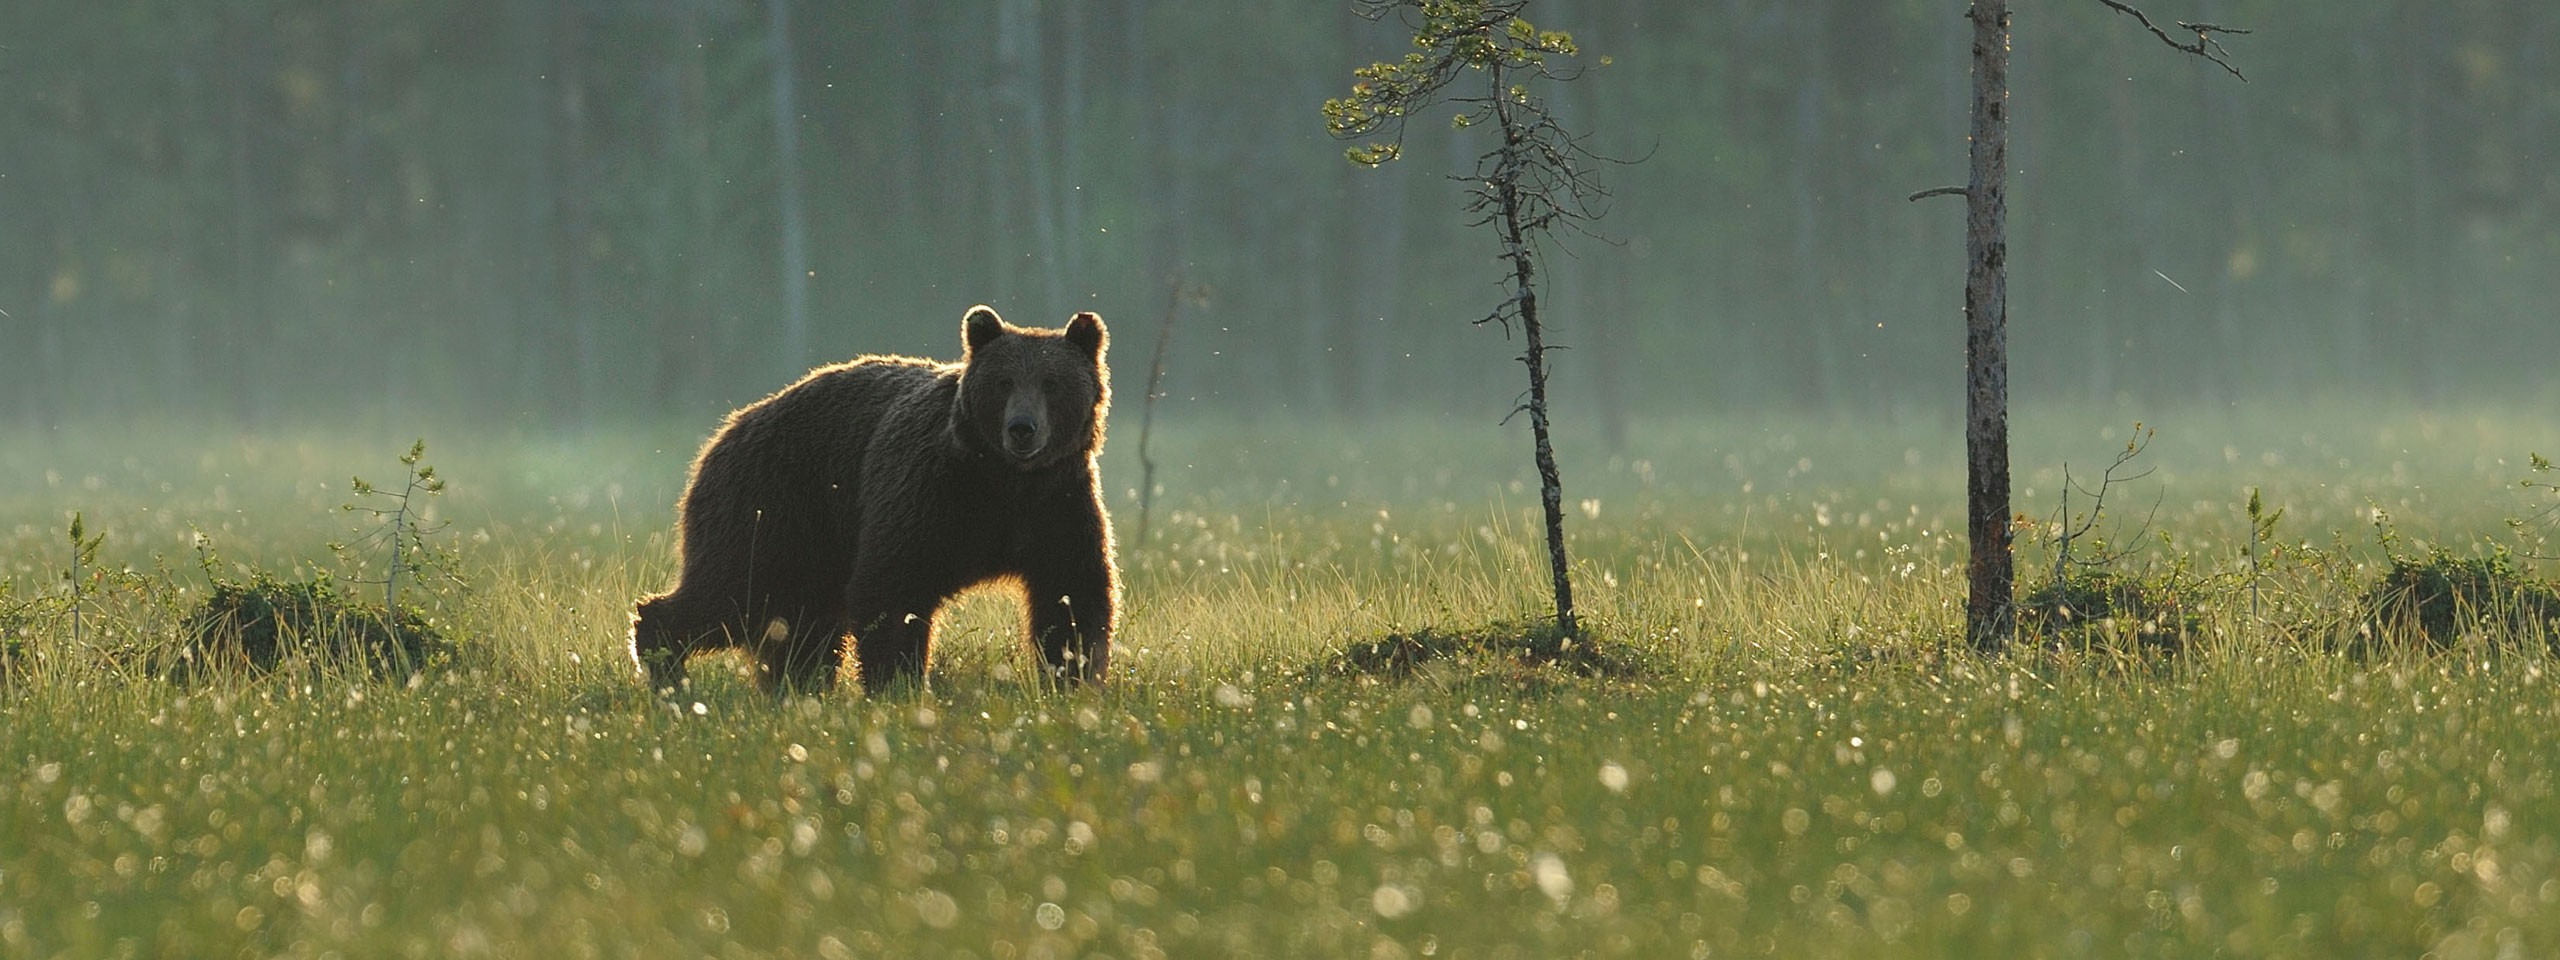 ©  Wild Wonders of Europe /Staffan Widstrand / WWF